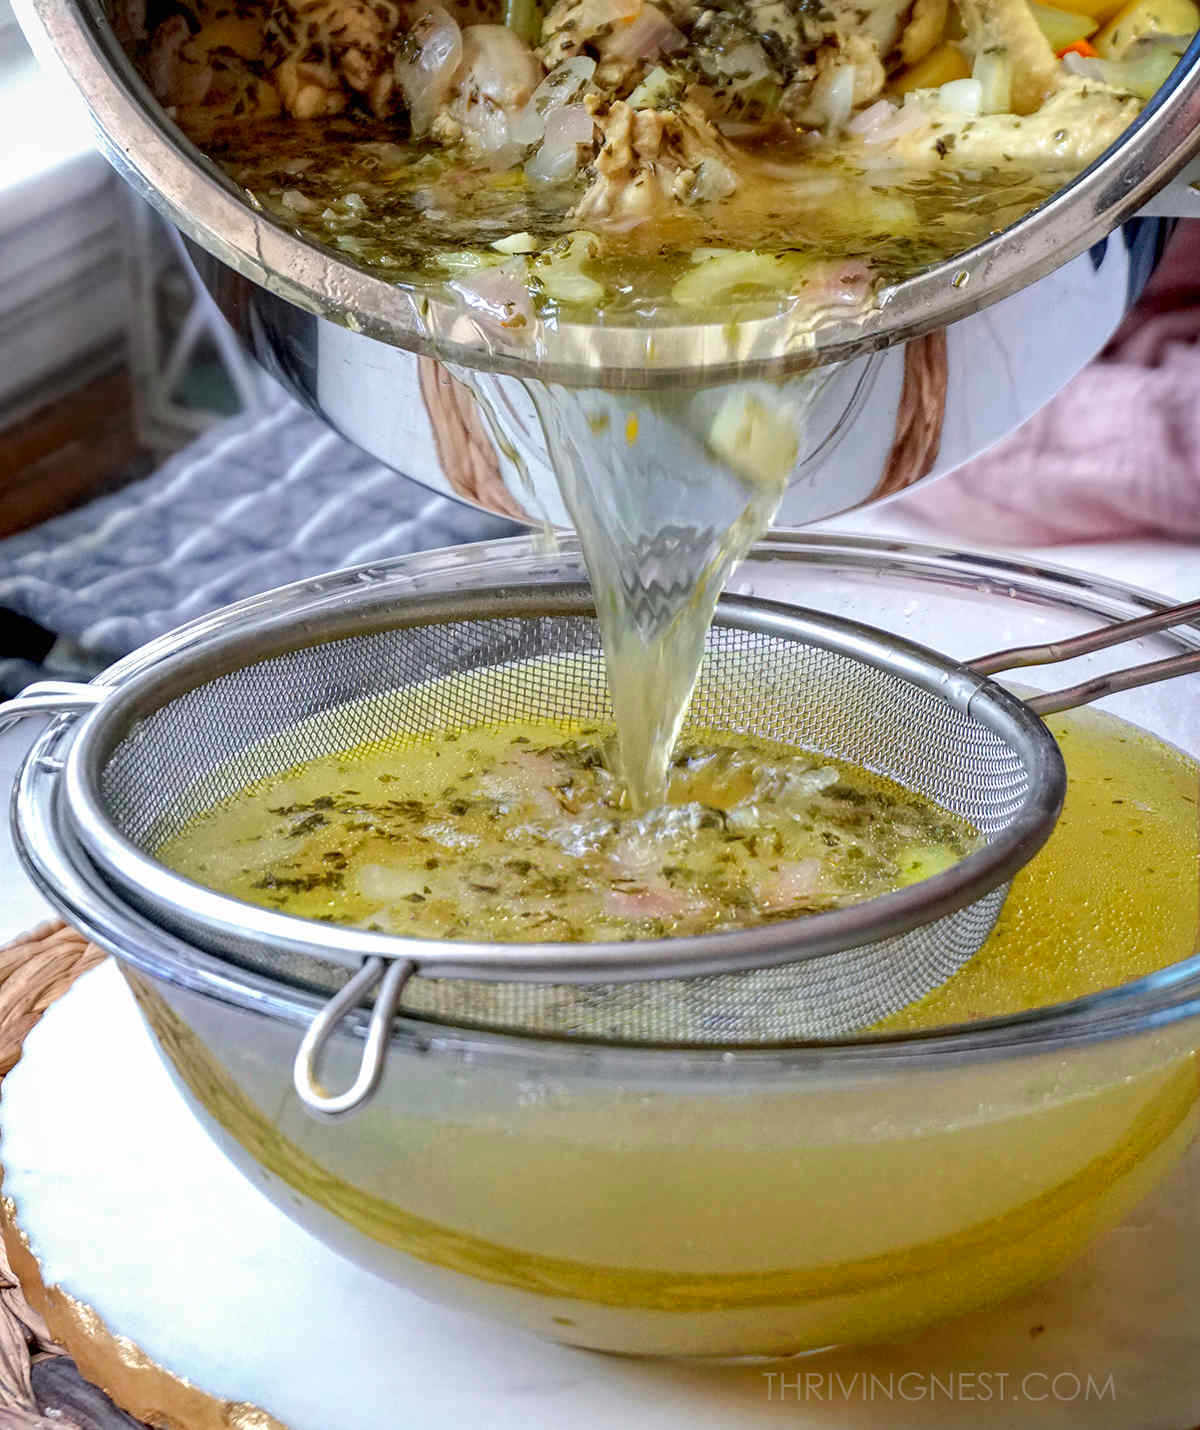 Baby stock or baby broth strained through a sieve.